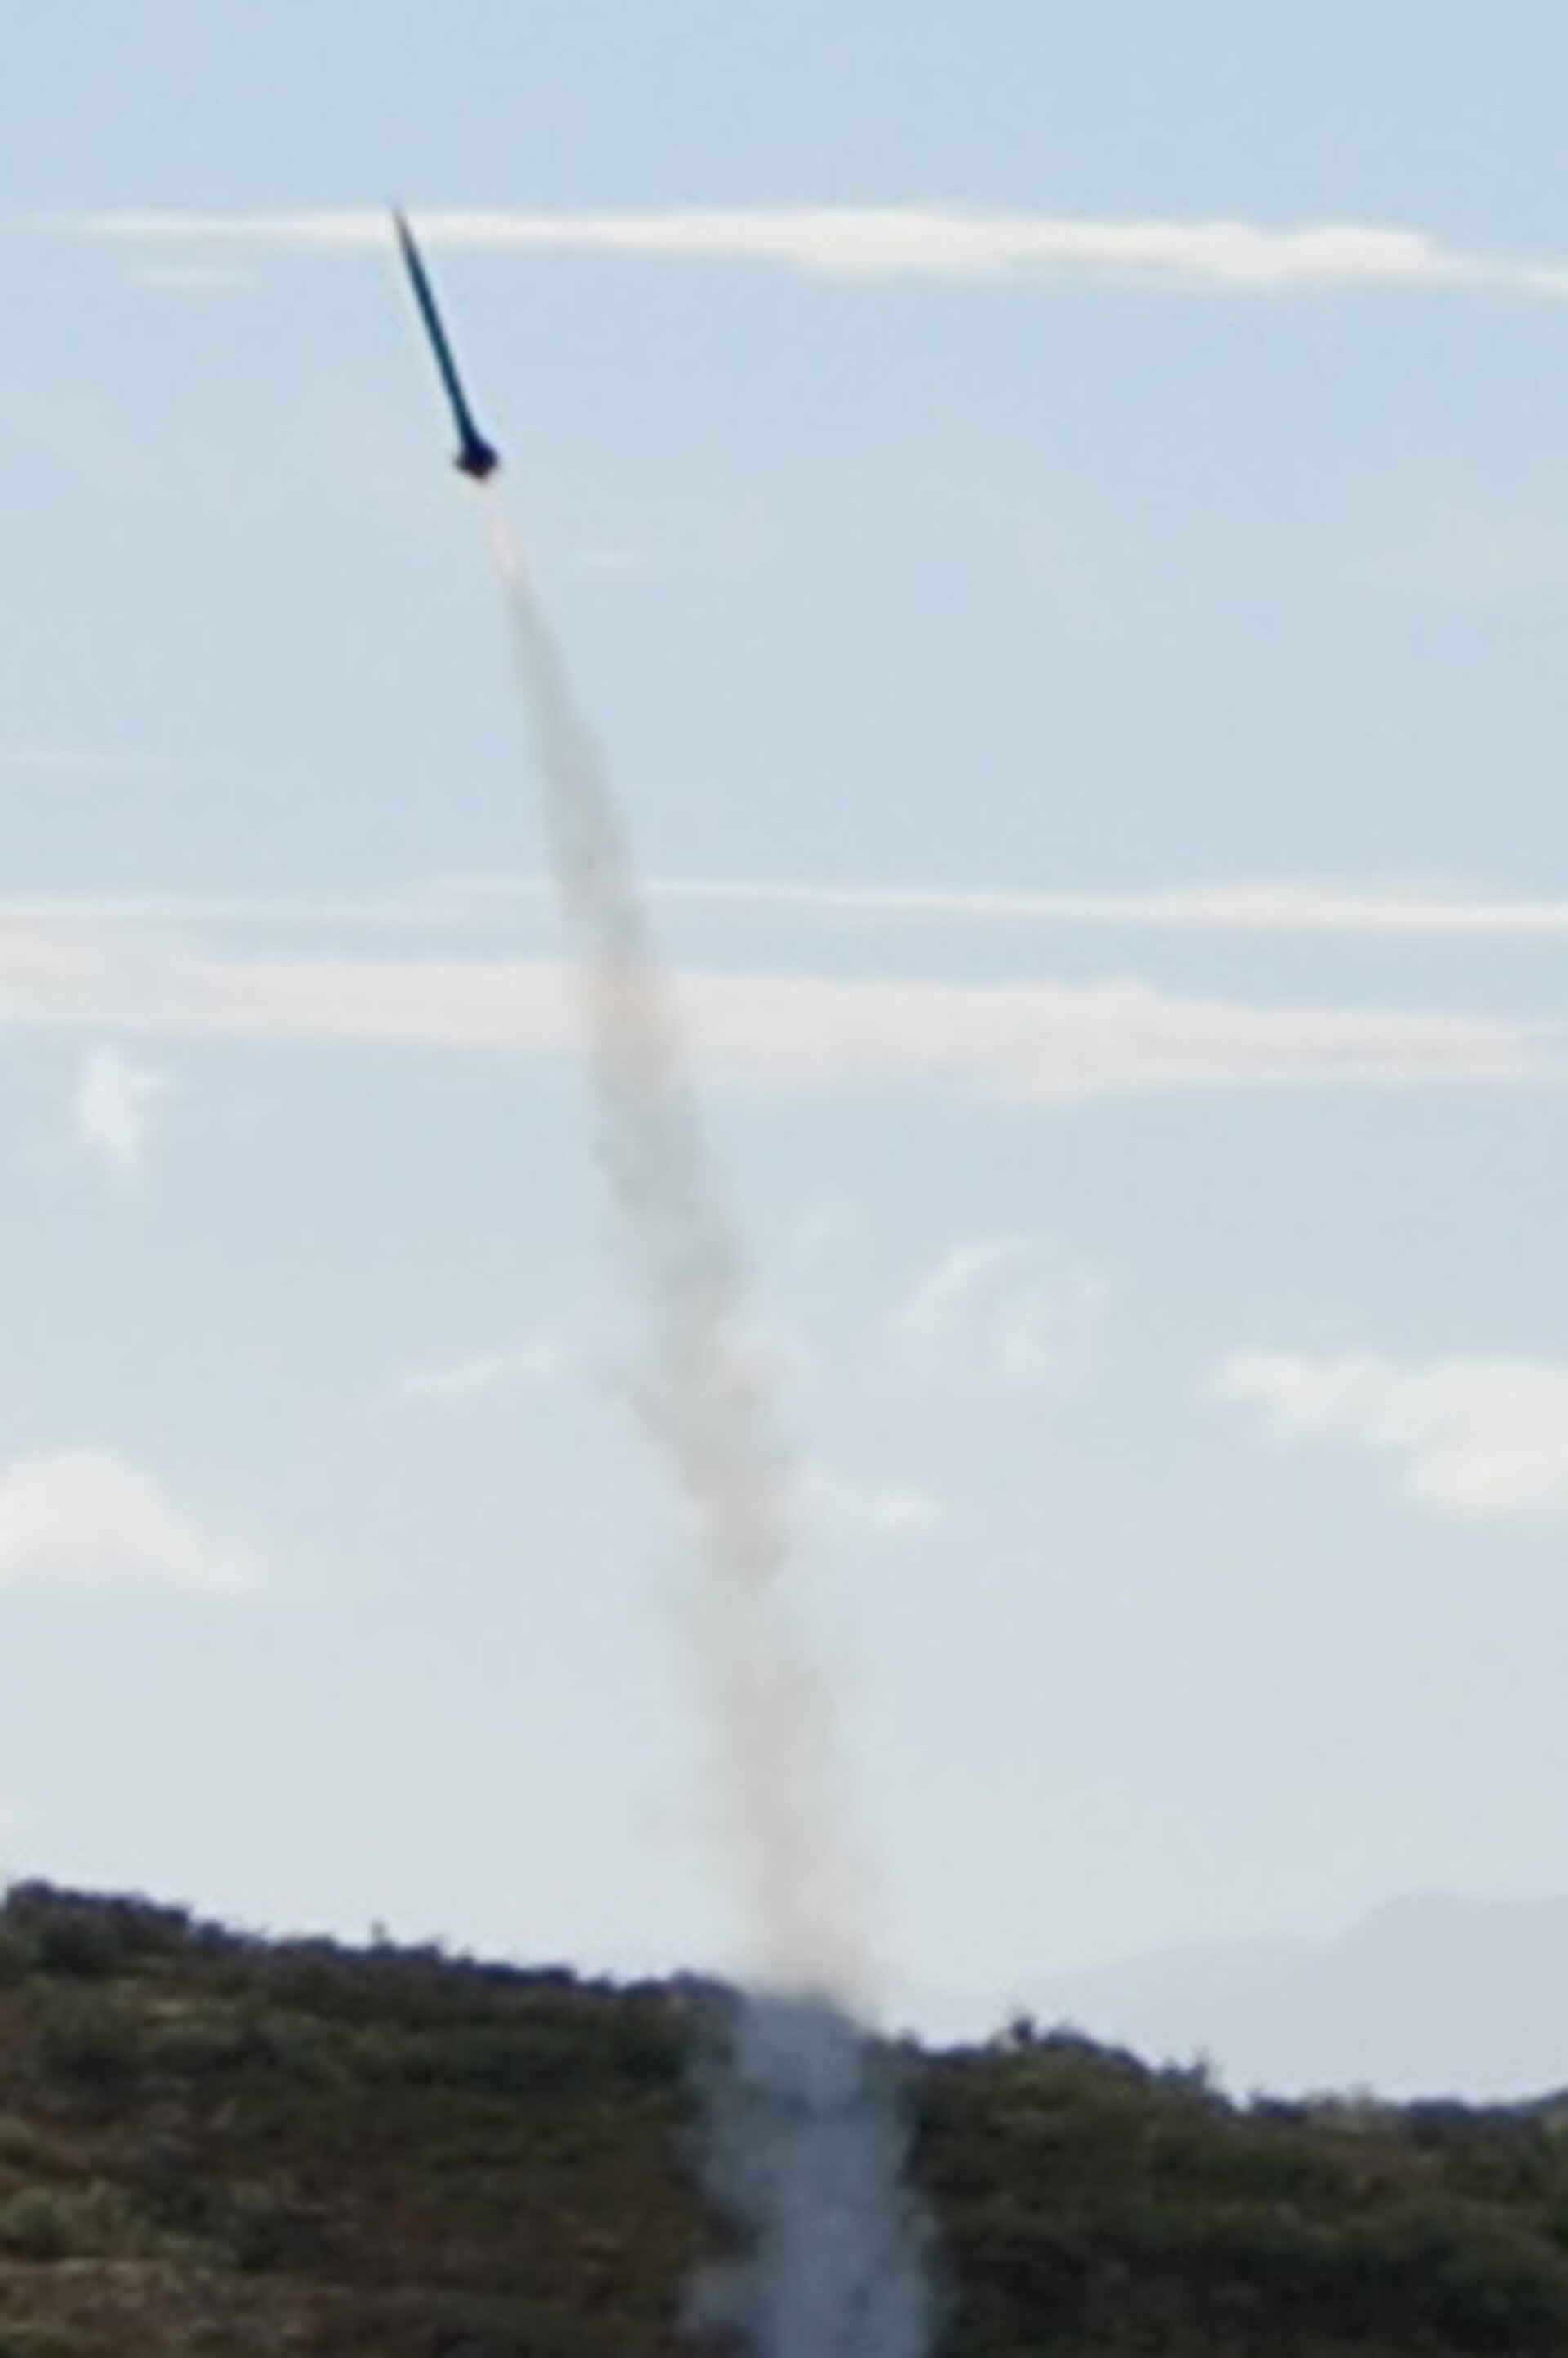 An Intruder rocket